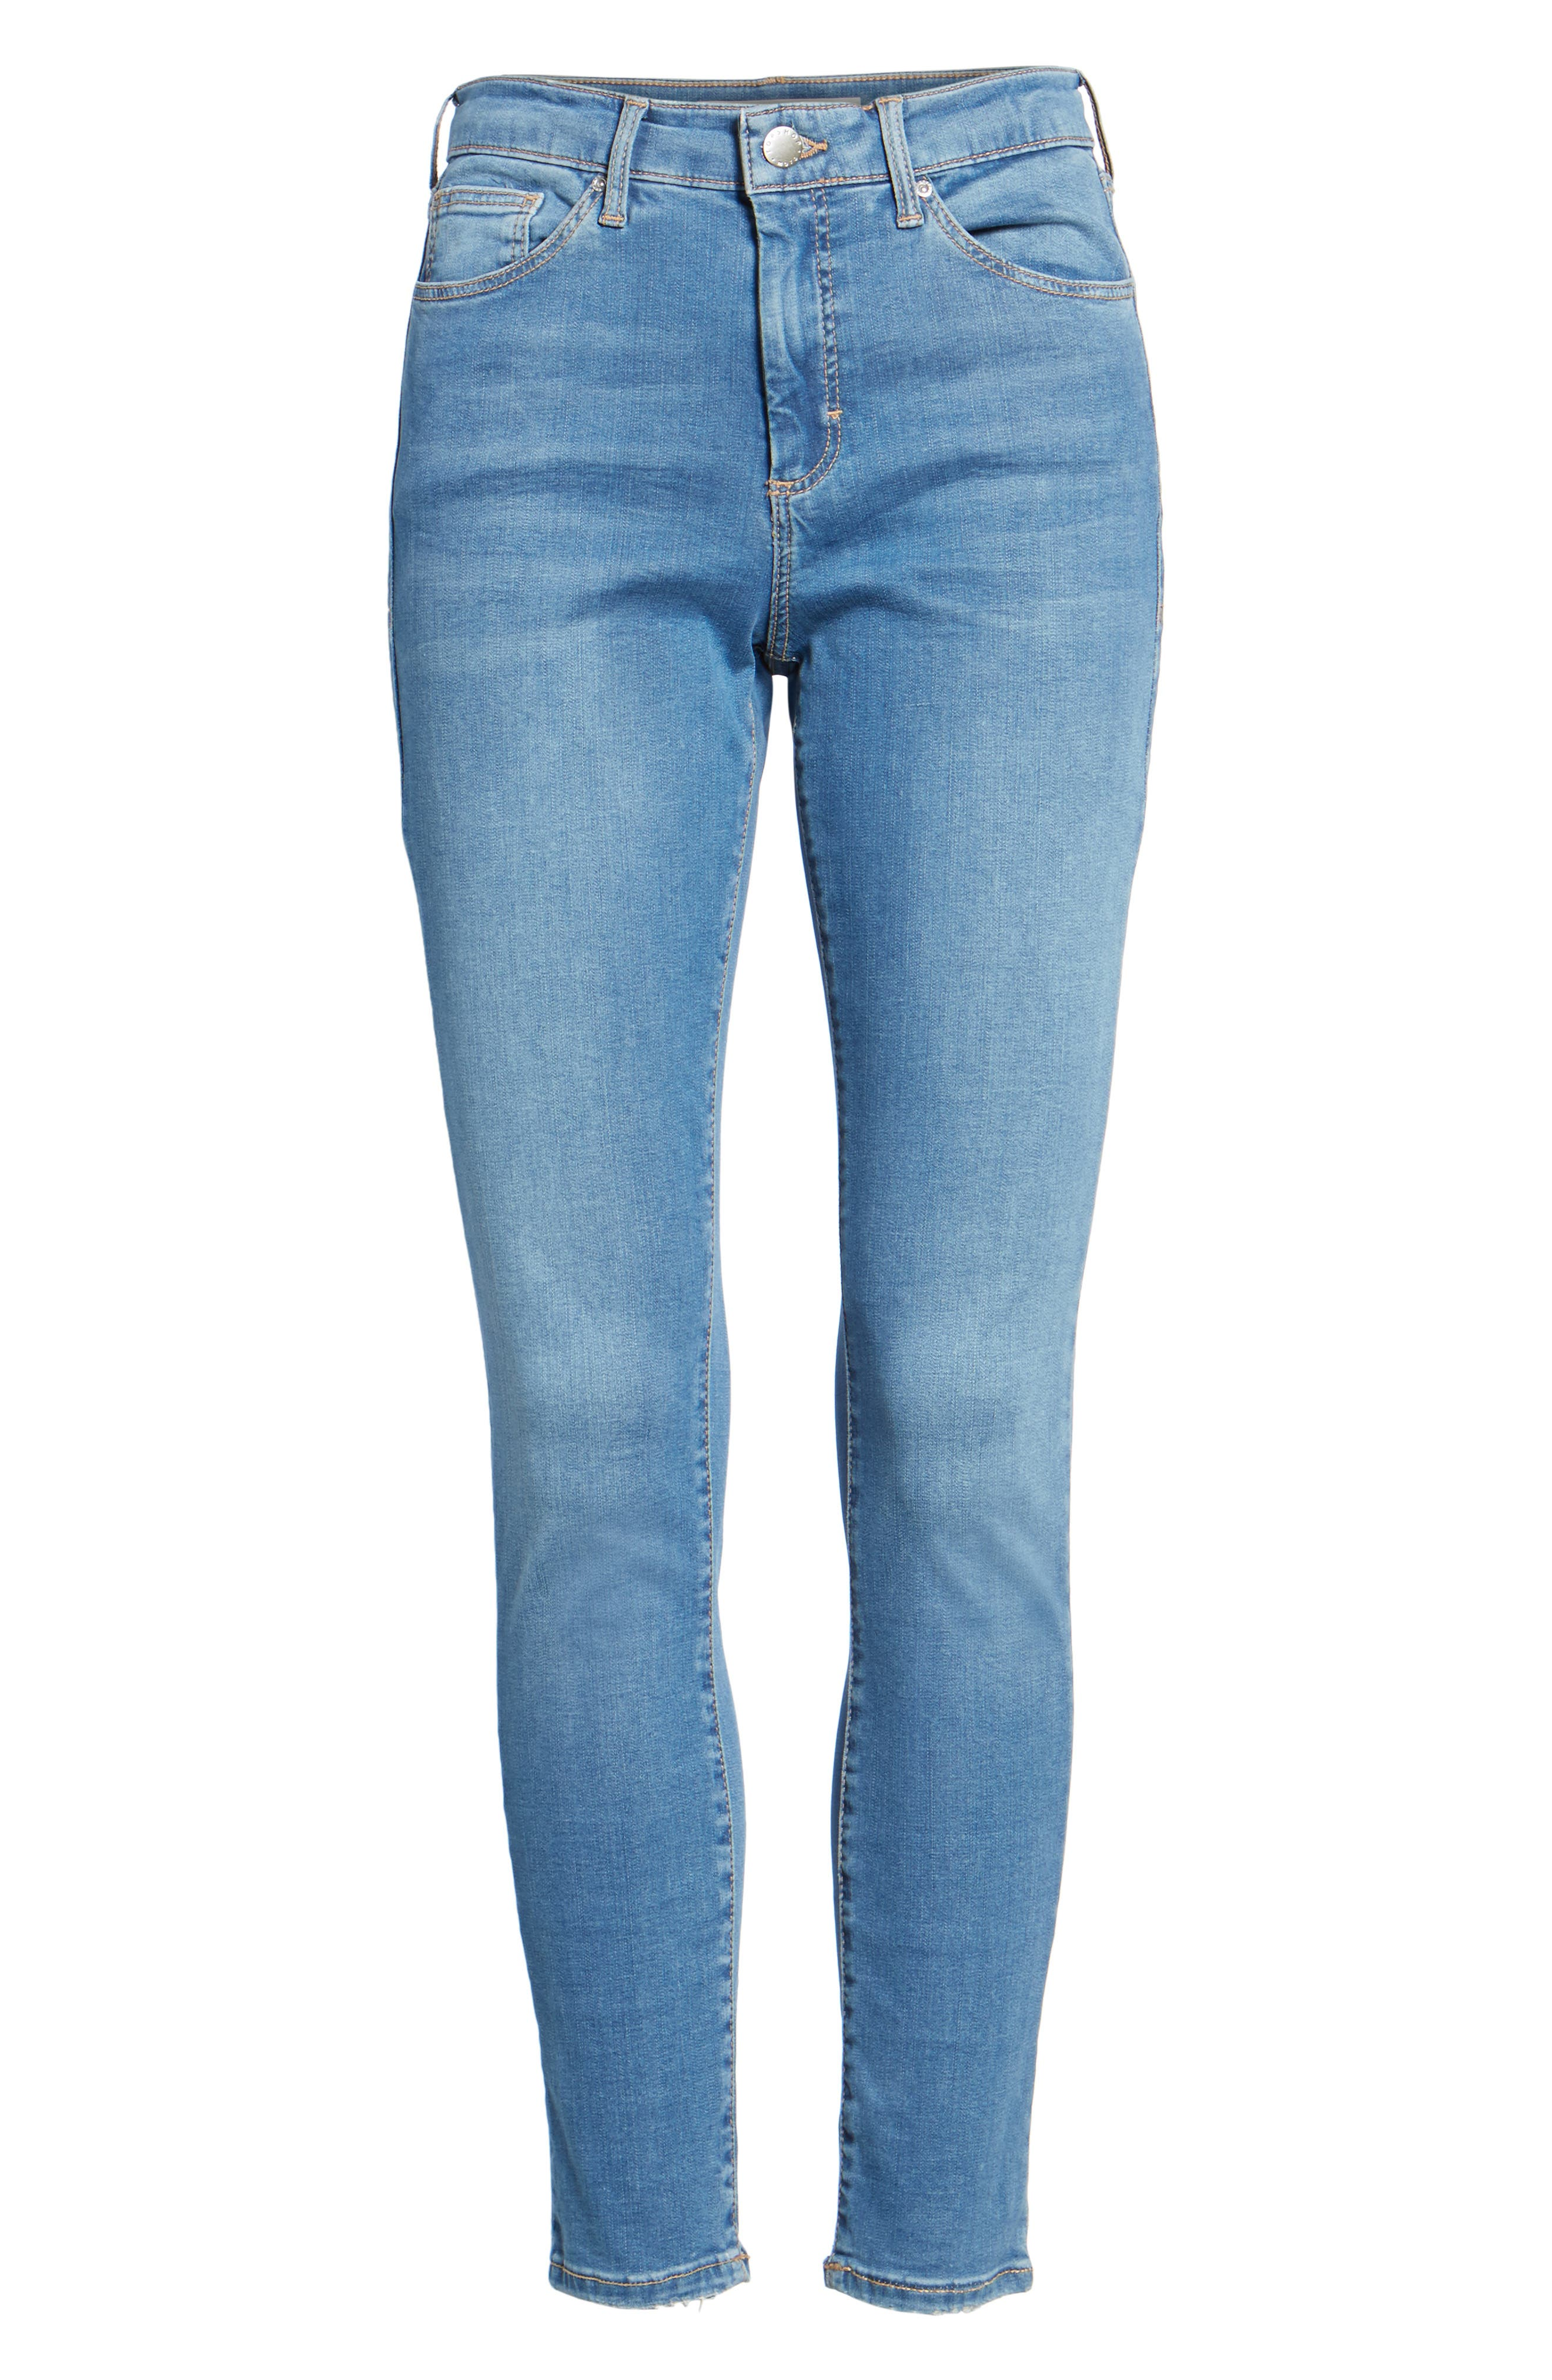 Leigh Skinny Jeans,                             Alternate thumbnail 6, color,                             400